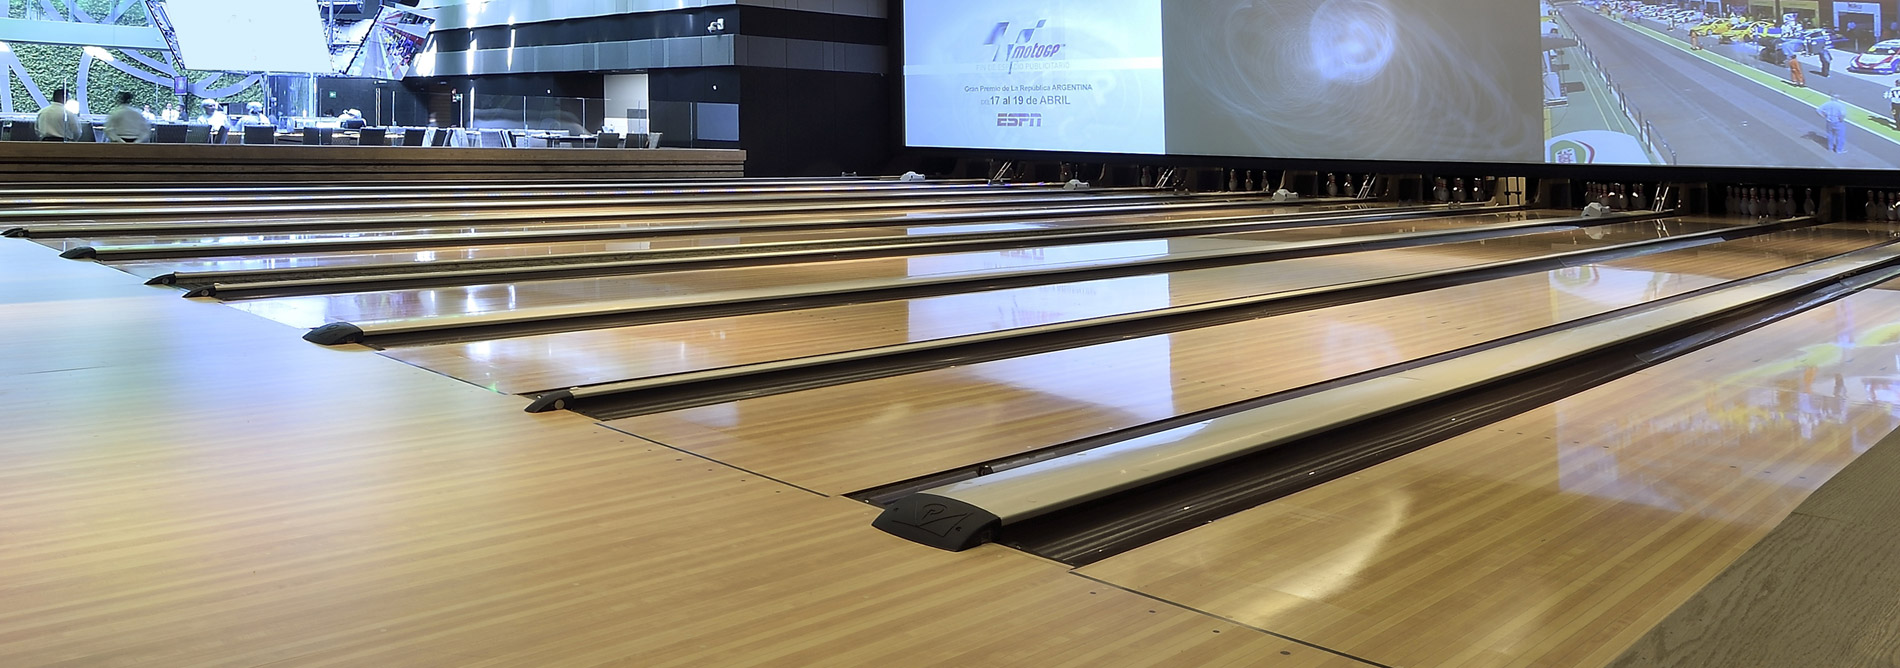 Bowling-QubicaAMF-lanes-spl-banner.jpg